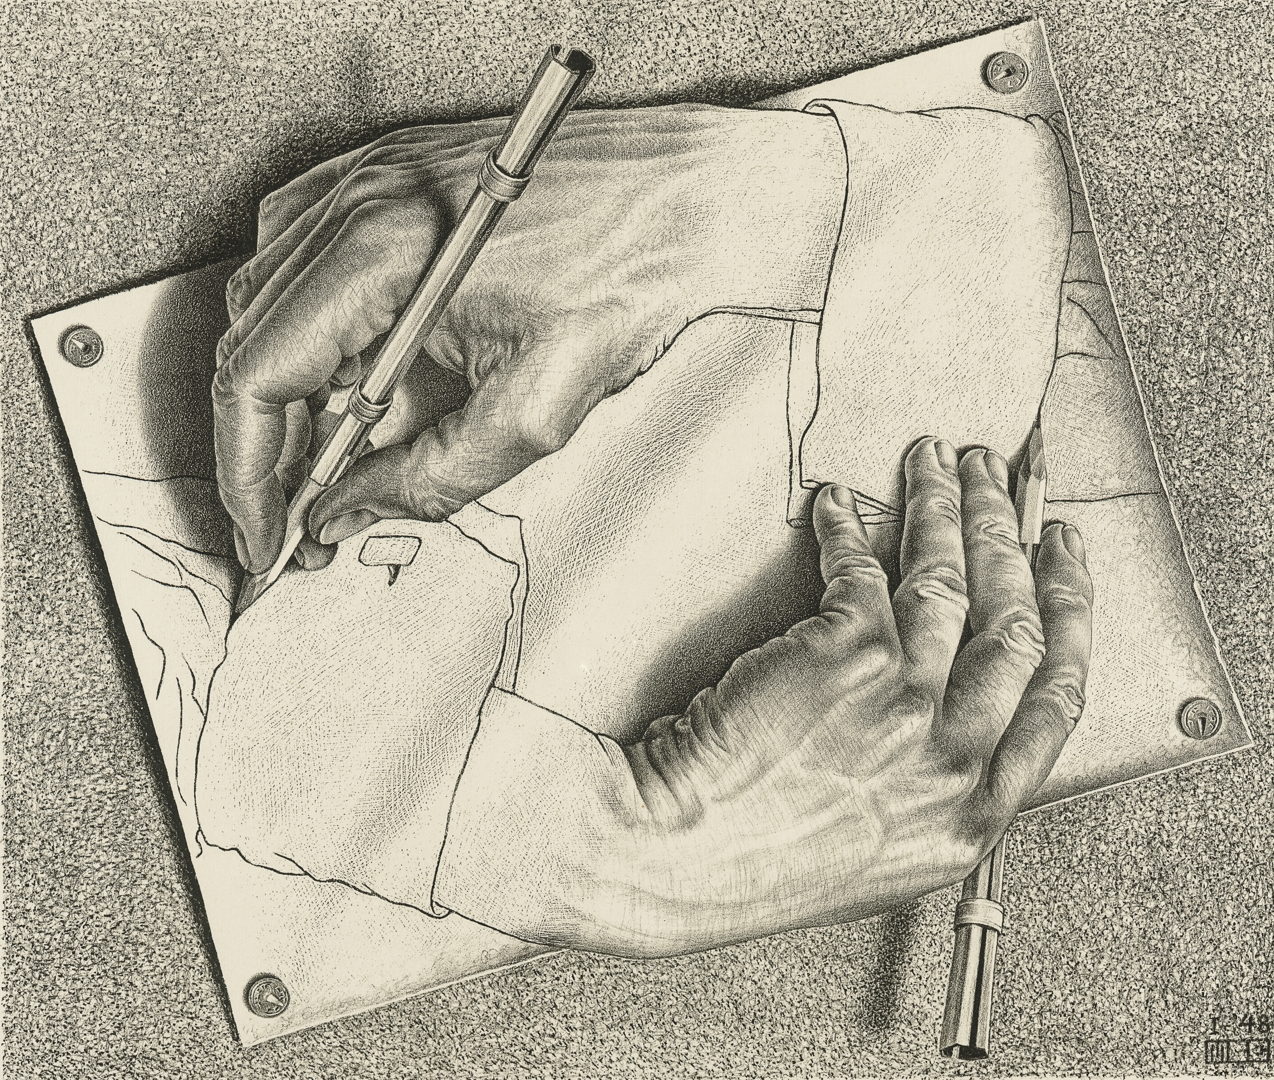 M.  C.  EscherDutch  1898–1972Drawing  handsJanuary  1948lithograph28.2  x  33.2  cm  (image)38.3  x  43.2  cm  (sheet)  Escher  Collection,  Gemeentemuseum  Den  Haag,  The  Hague,  the  Netherlands image